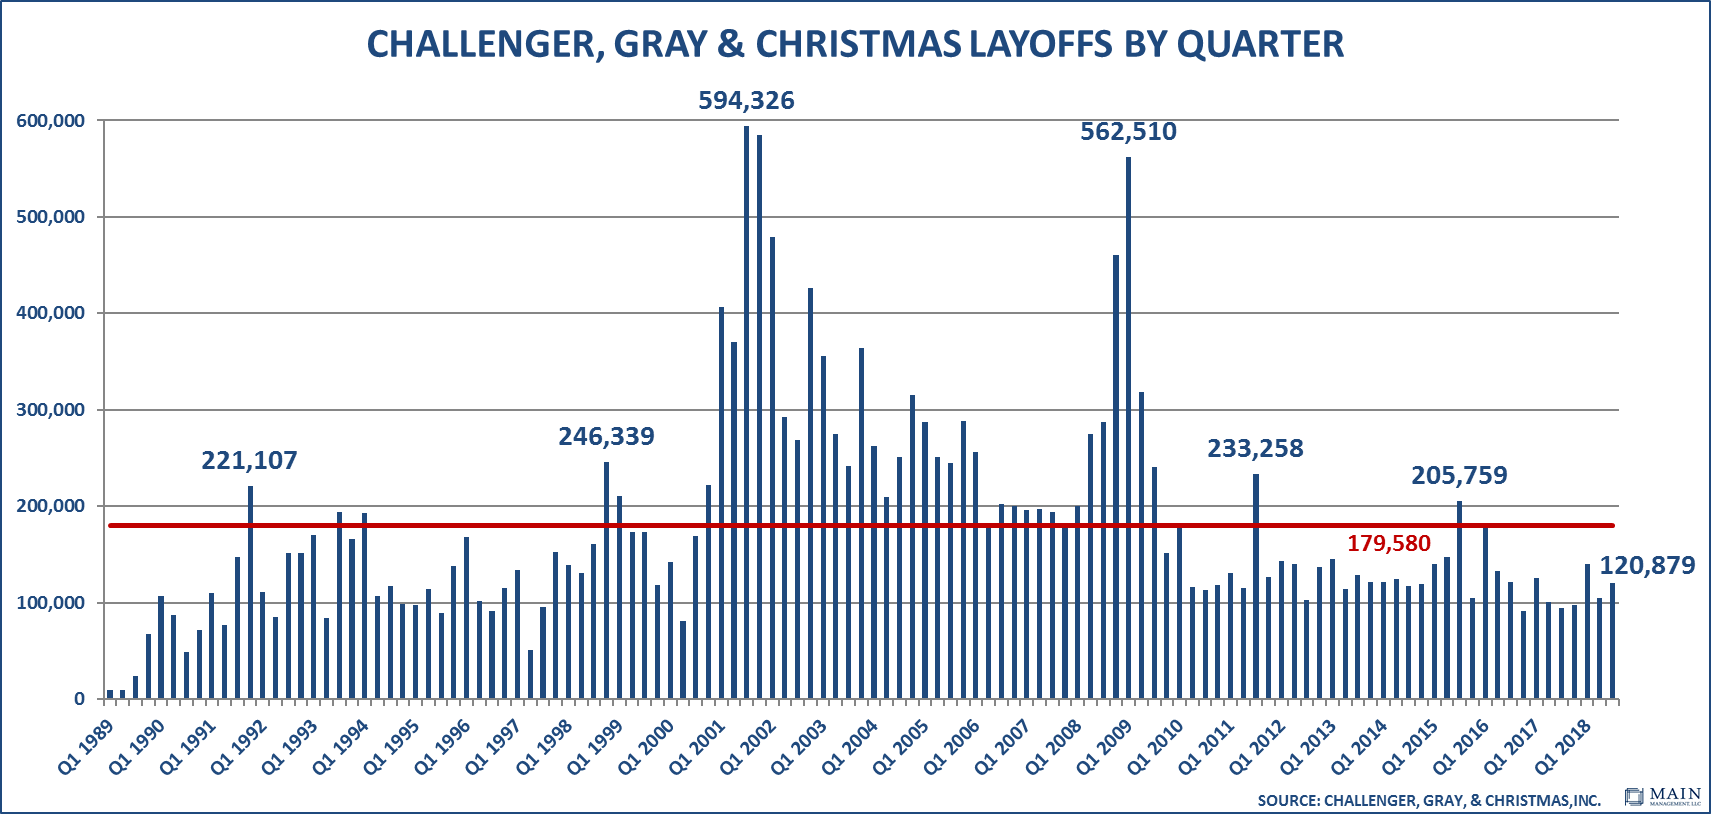 Challenger Gray Christmas Layoffs by Quarter